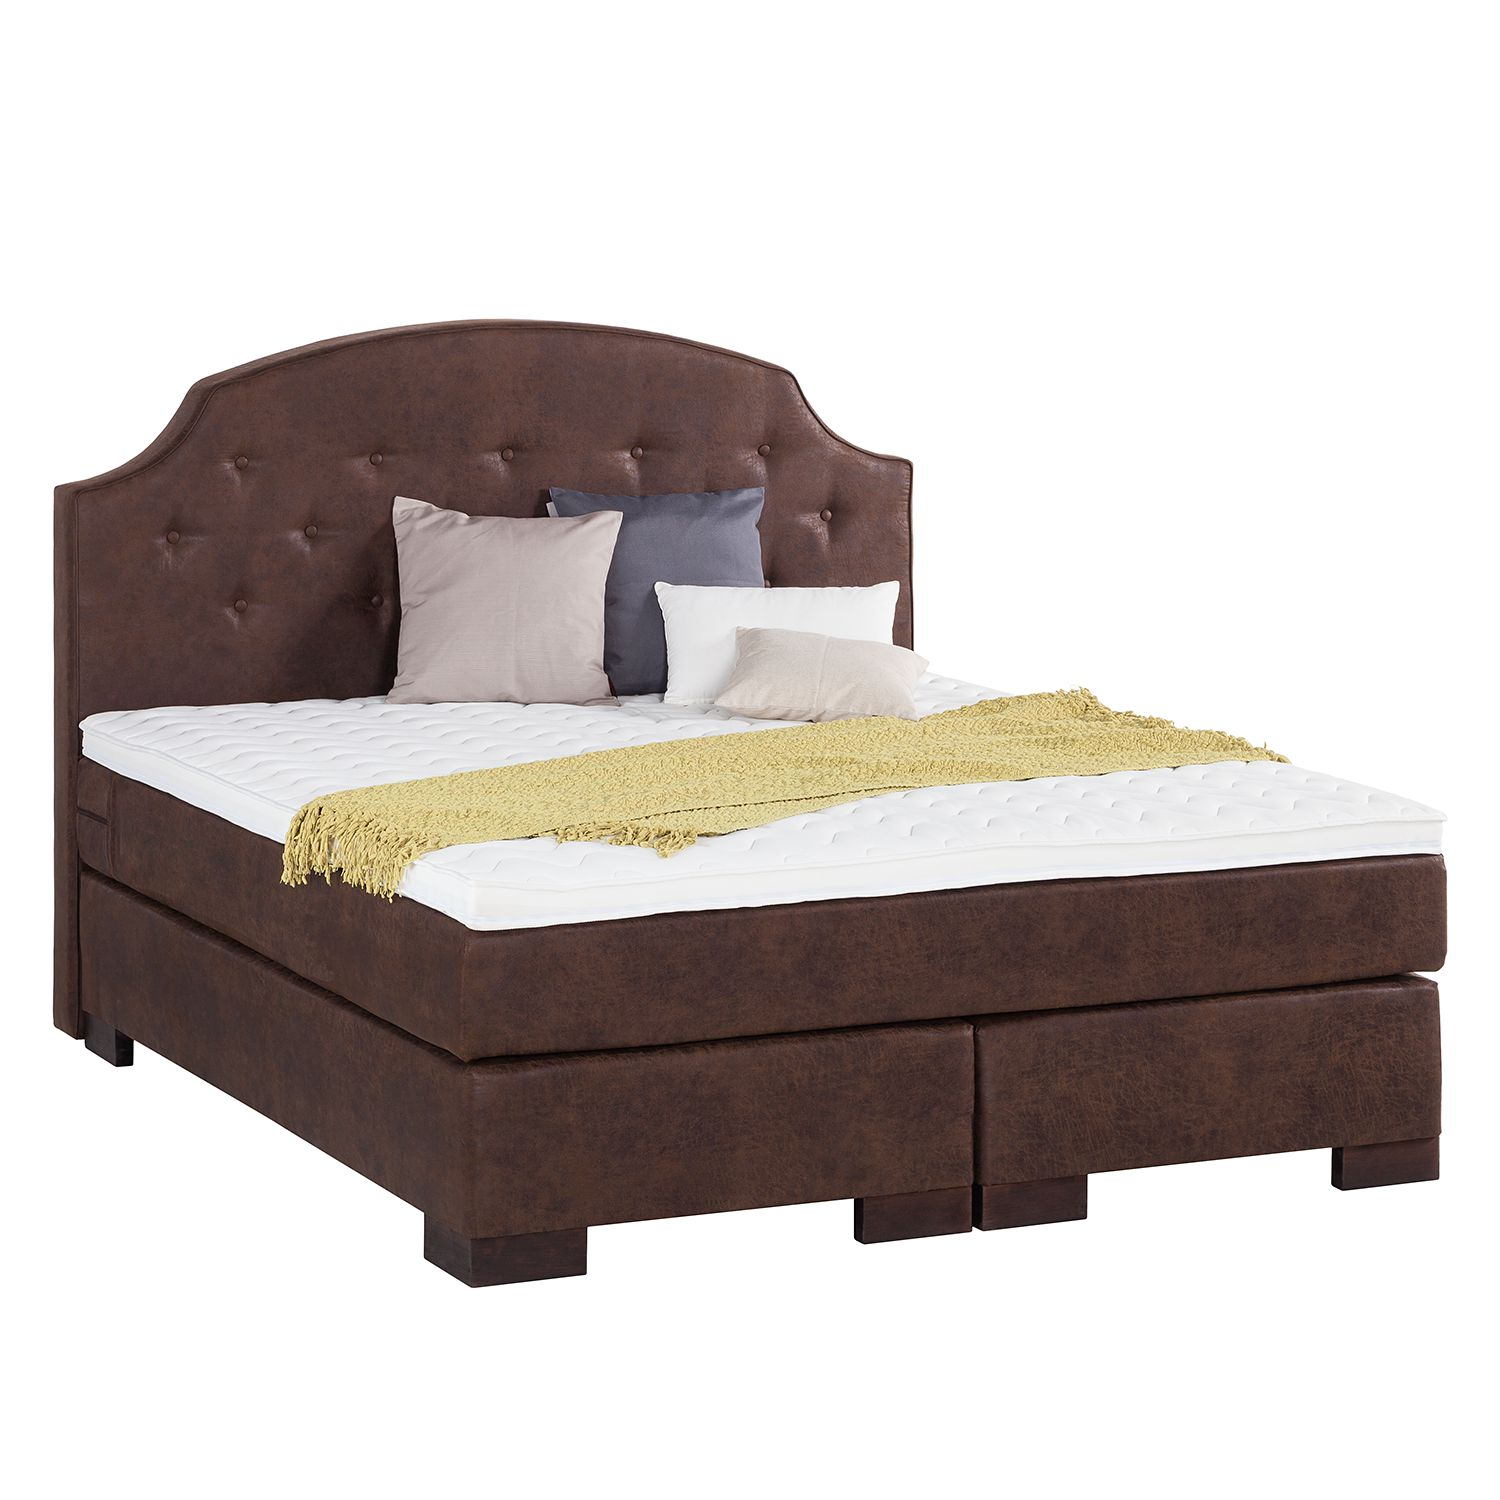 boxspringbett manchester microfaser braun 140 x. Black Bedroom Furniture Sets. Home Design Ideas